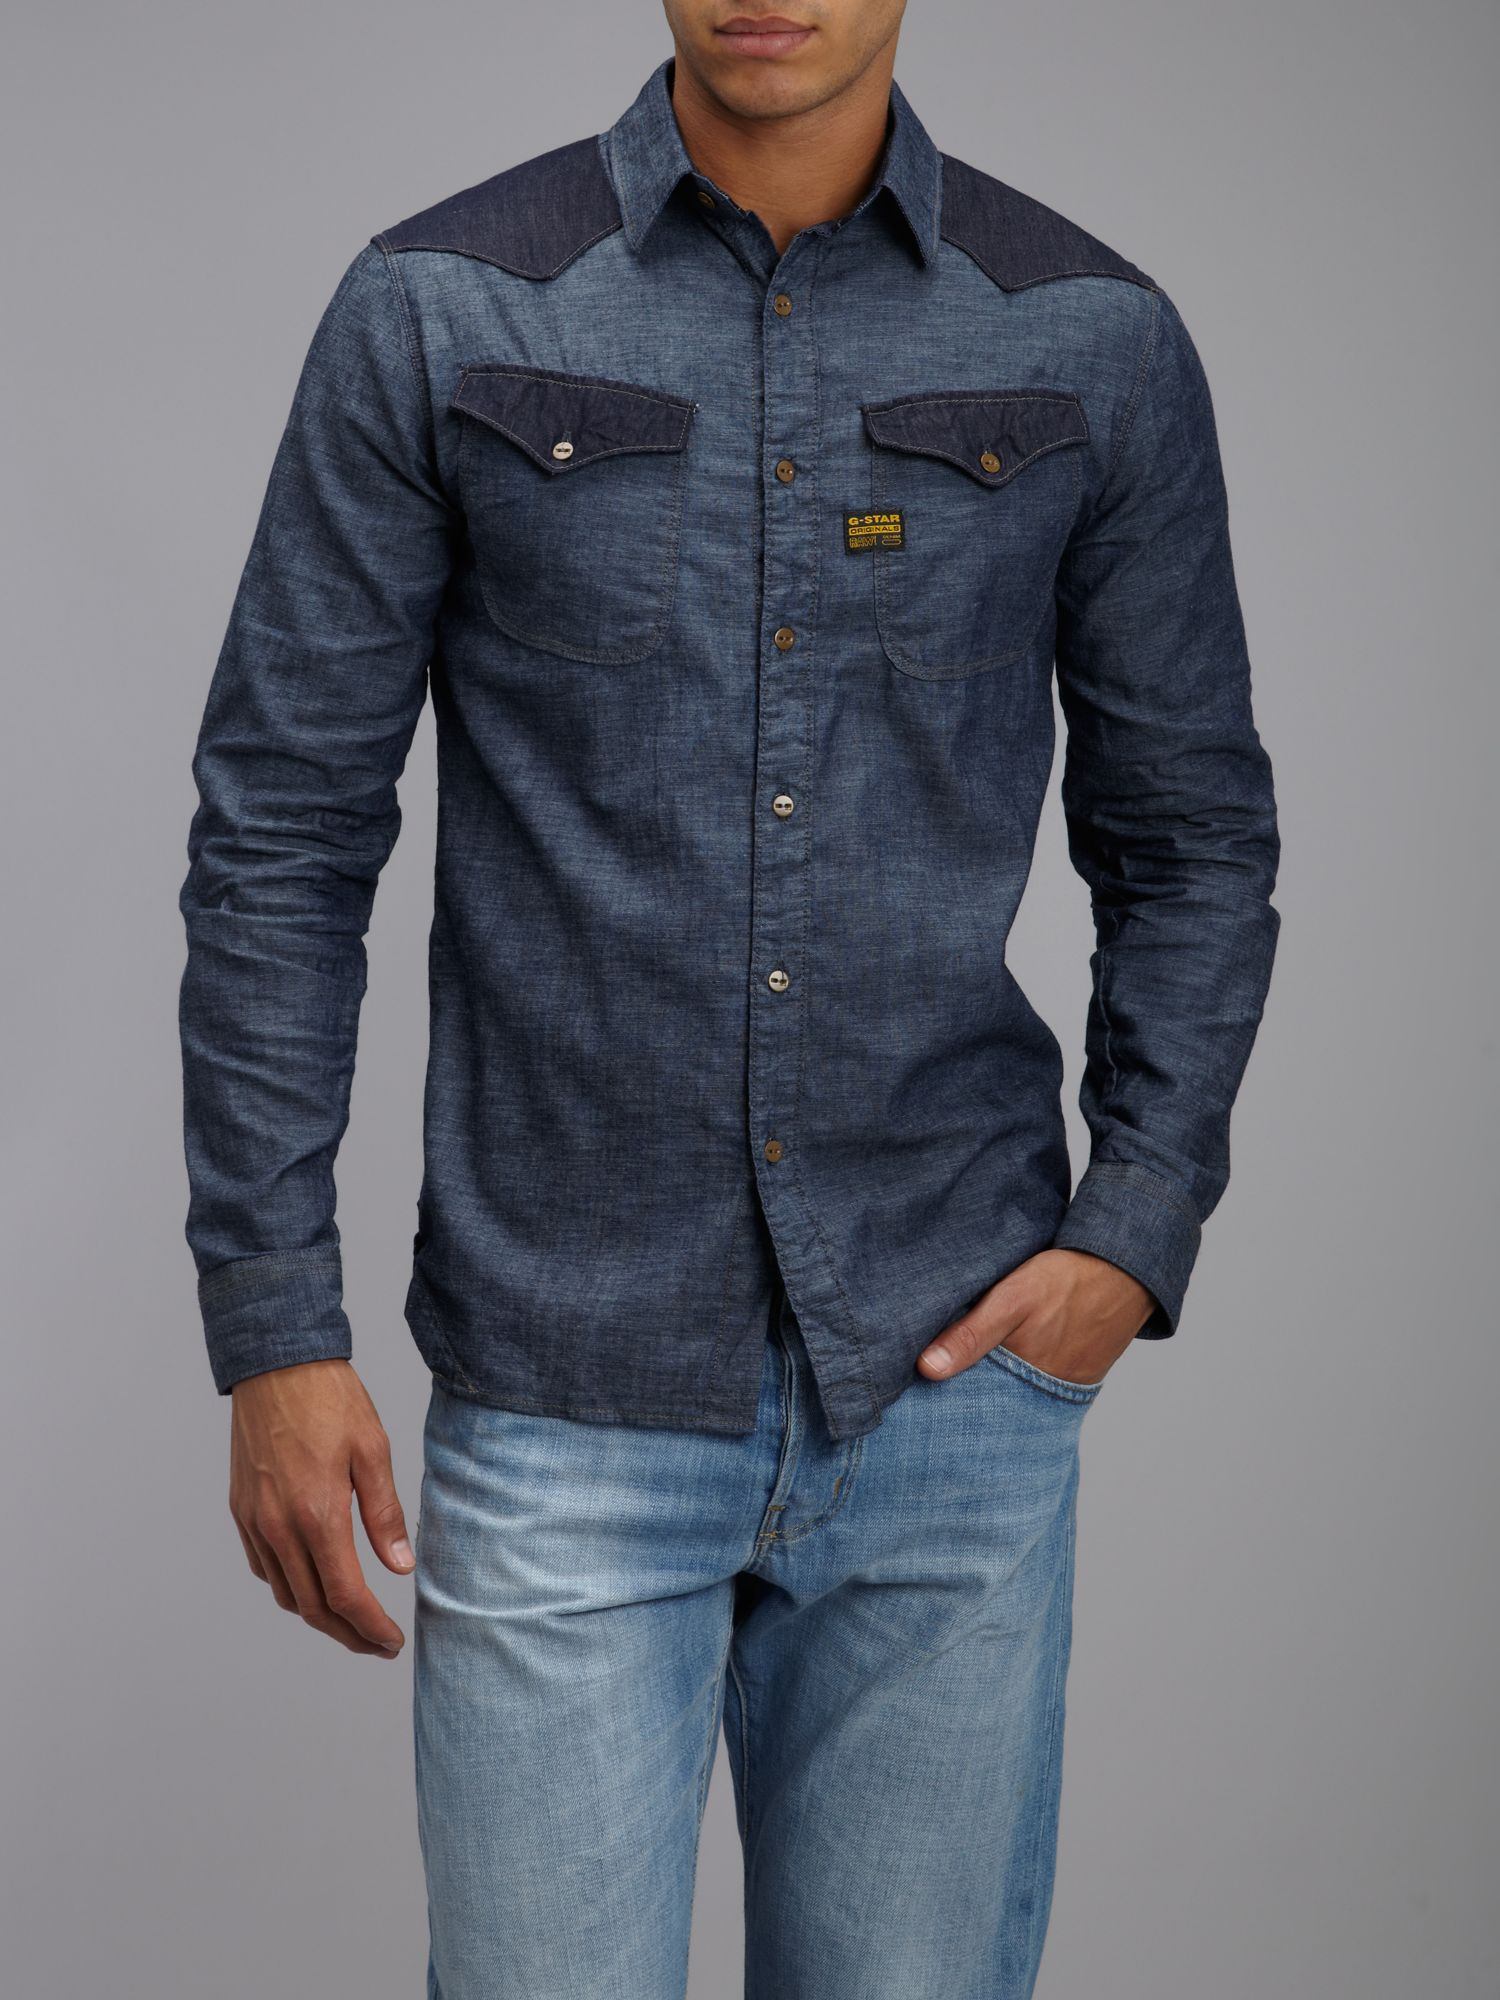 g star raw denim shirt in blue for men lyst. Black Bedroom Furniture Sets. Home Design Ideas